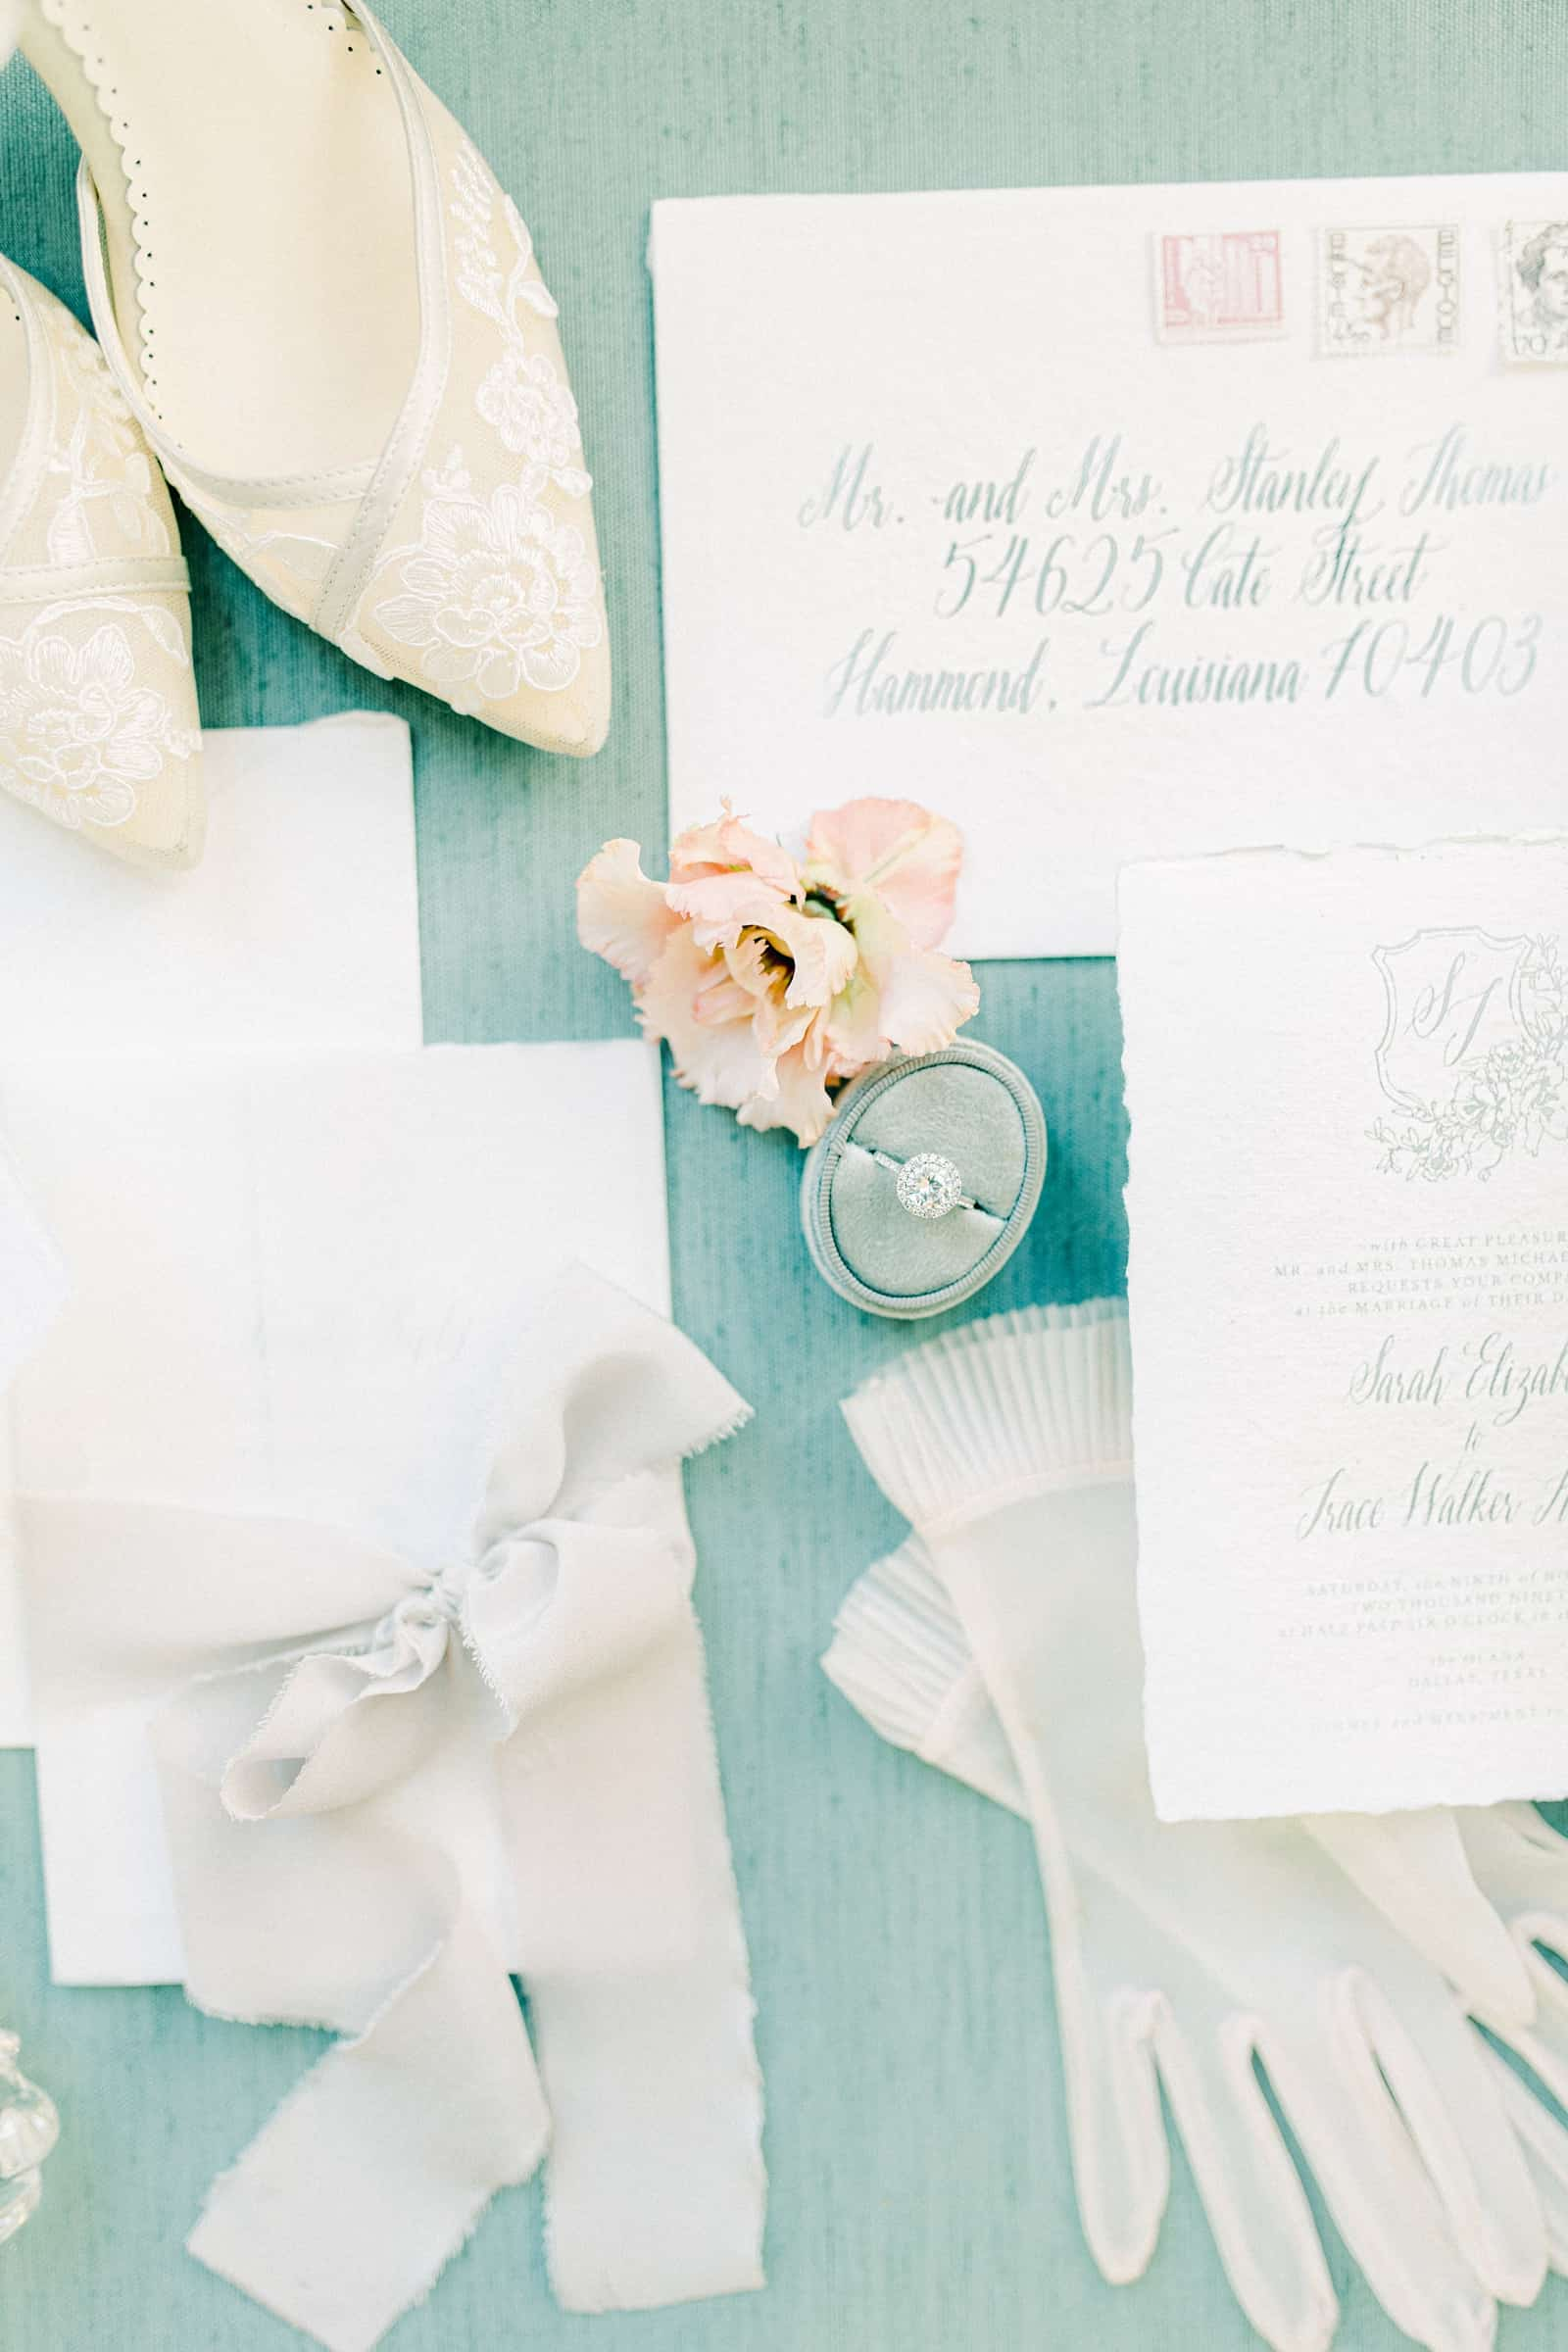 Oval velvet ring box with round cushion cut diamond wedding engagement ring, fine art sketched European style wedding invitations on light blue background